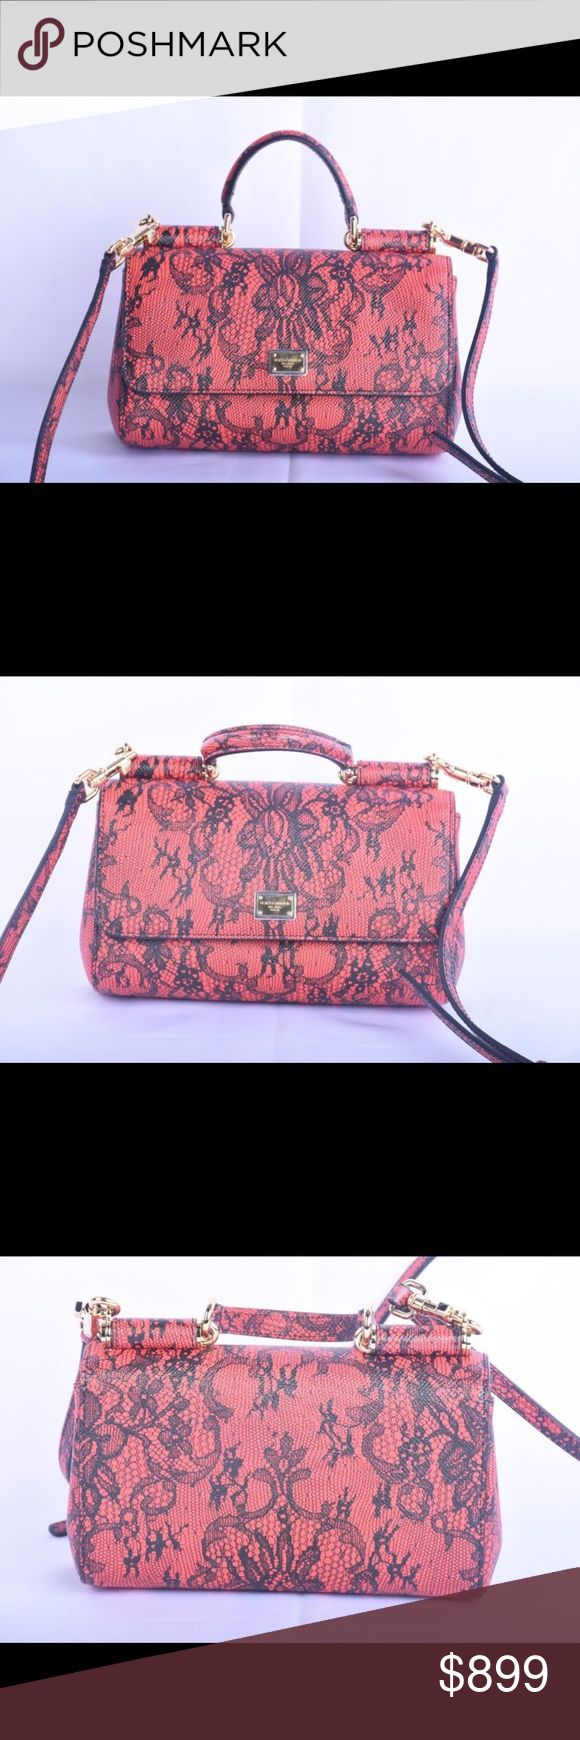 USED DOLCE AND GABANNA RED LACE HANDBAG USED DOLCE AND GABBANA RED LACE FLORAL CLUTCH HANDBAG. Messenger cross body style.  No rips, tears or holes on bag or strap. Bags Crossbody Bags